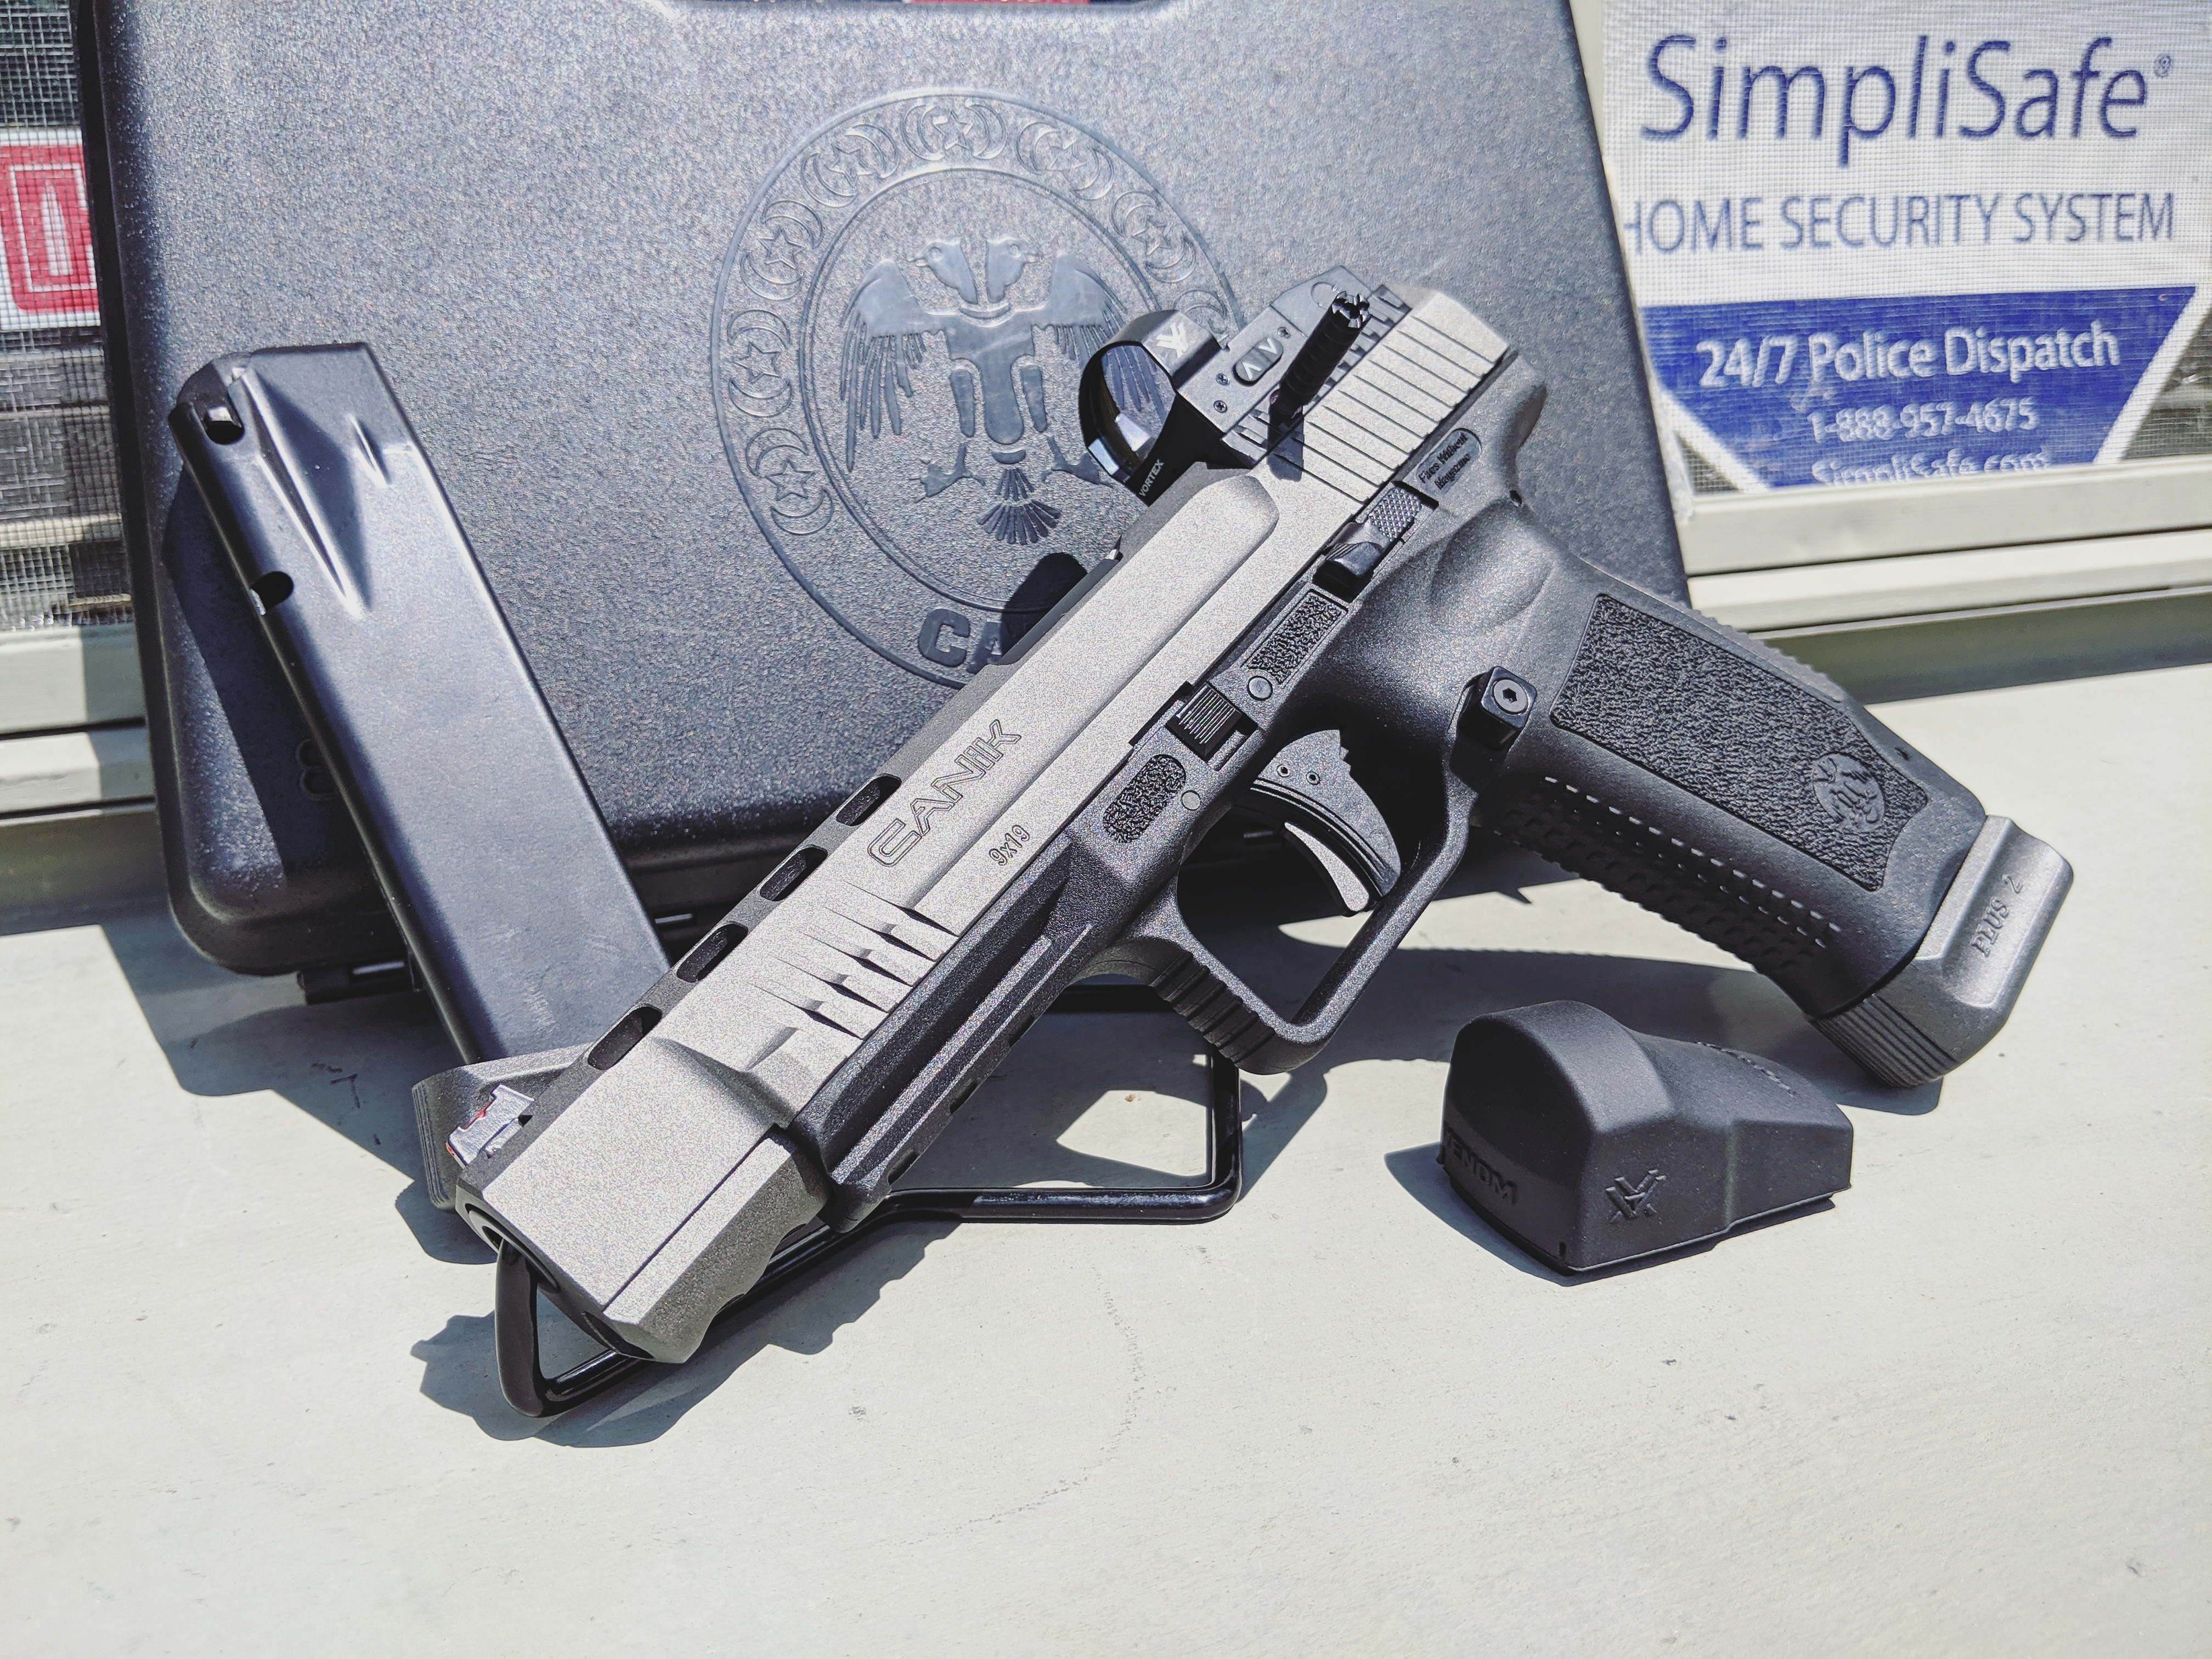 For Sale - Canik TP9SFX 9MM - $600